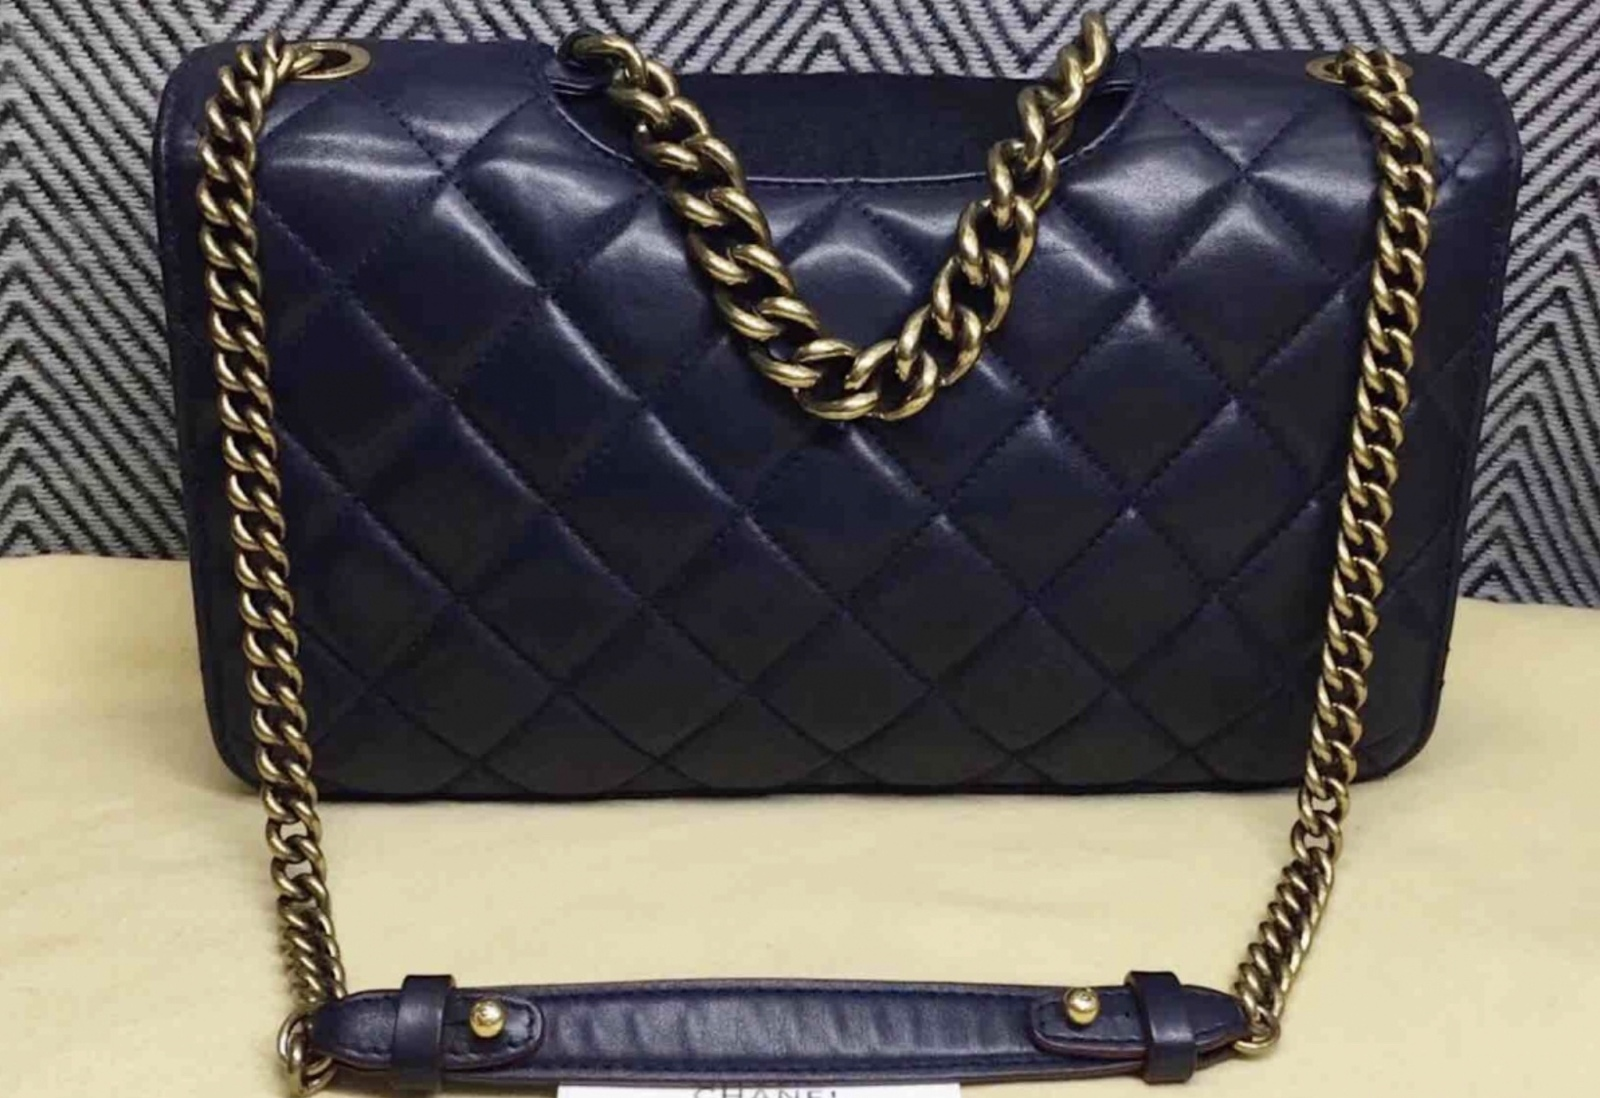 e9fd7d86eca9 AUTHENTIC CHANEL RARE NAVY BLUE QUILTED LAMBSKIN LARGE PERFECT EDGE BAG  GOLD HW